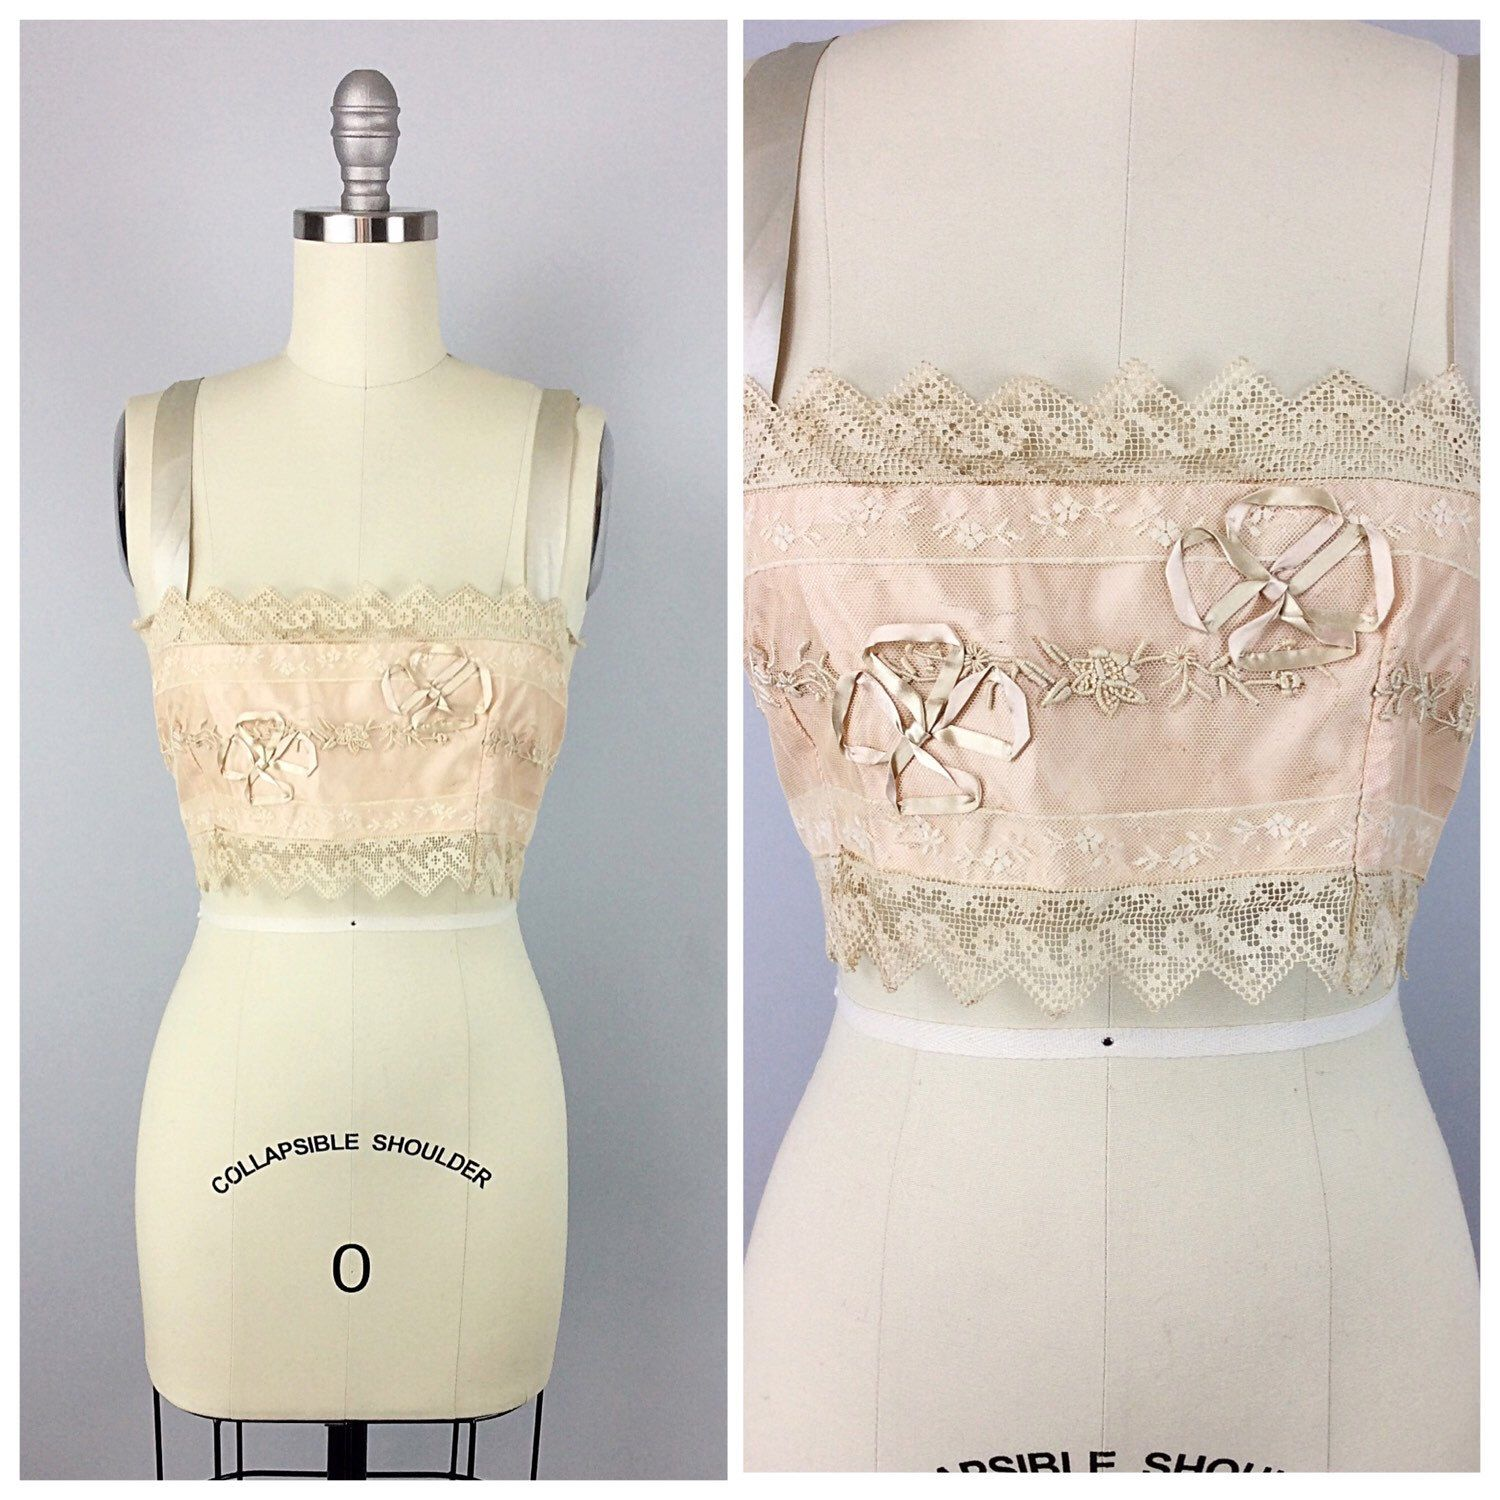 20s Peach Pink Lace Camisole - 1920s Vintage Ribbon Applique Bralette Bra - Small - Size 4 by CheshireVintageShop on Etsy https://www.etsy.com/listing/262805165/20s-peach-pink-lace-camisole-1920s